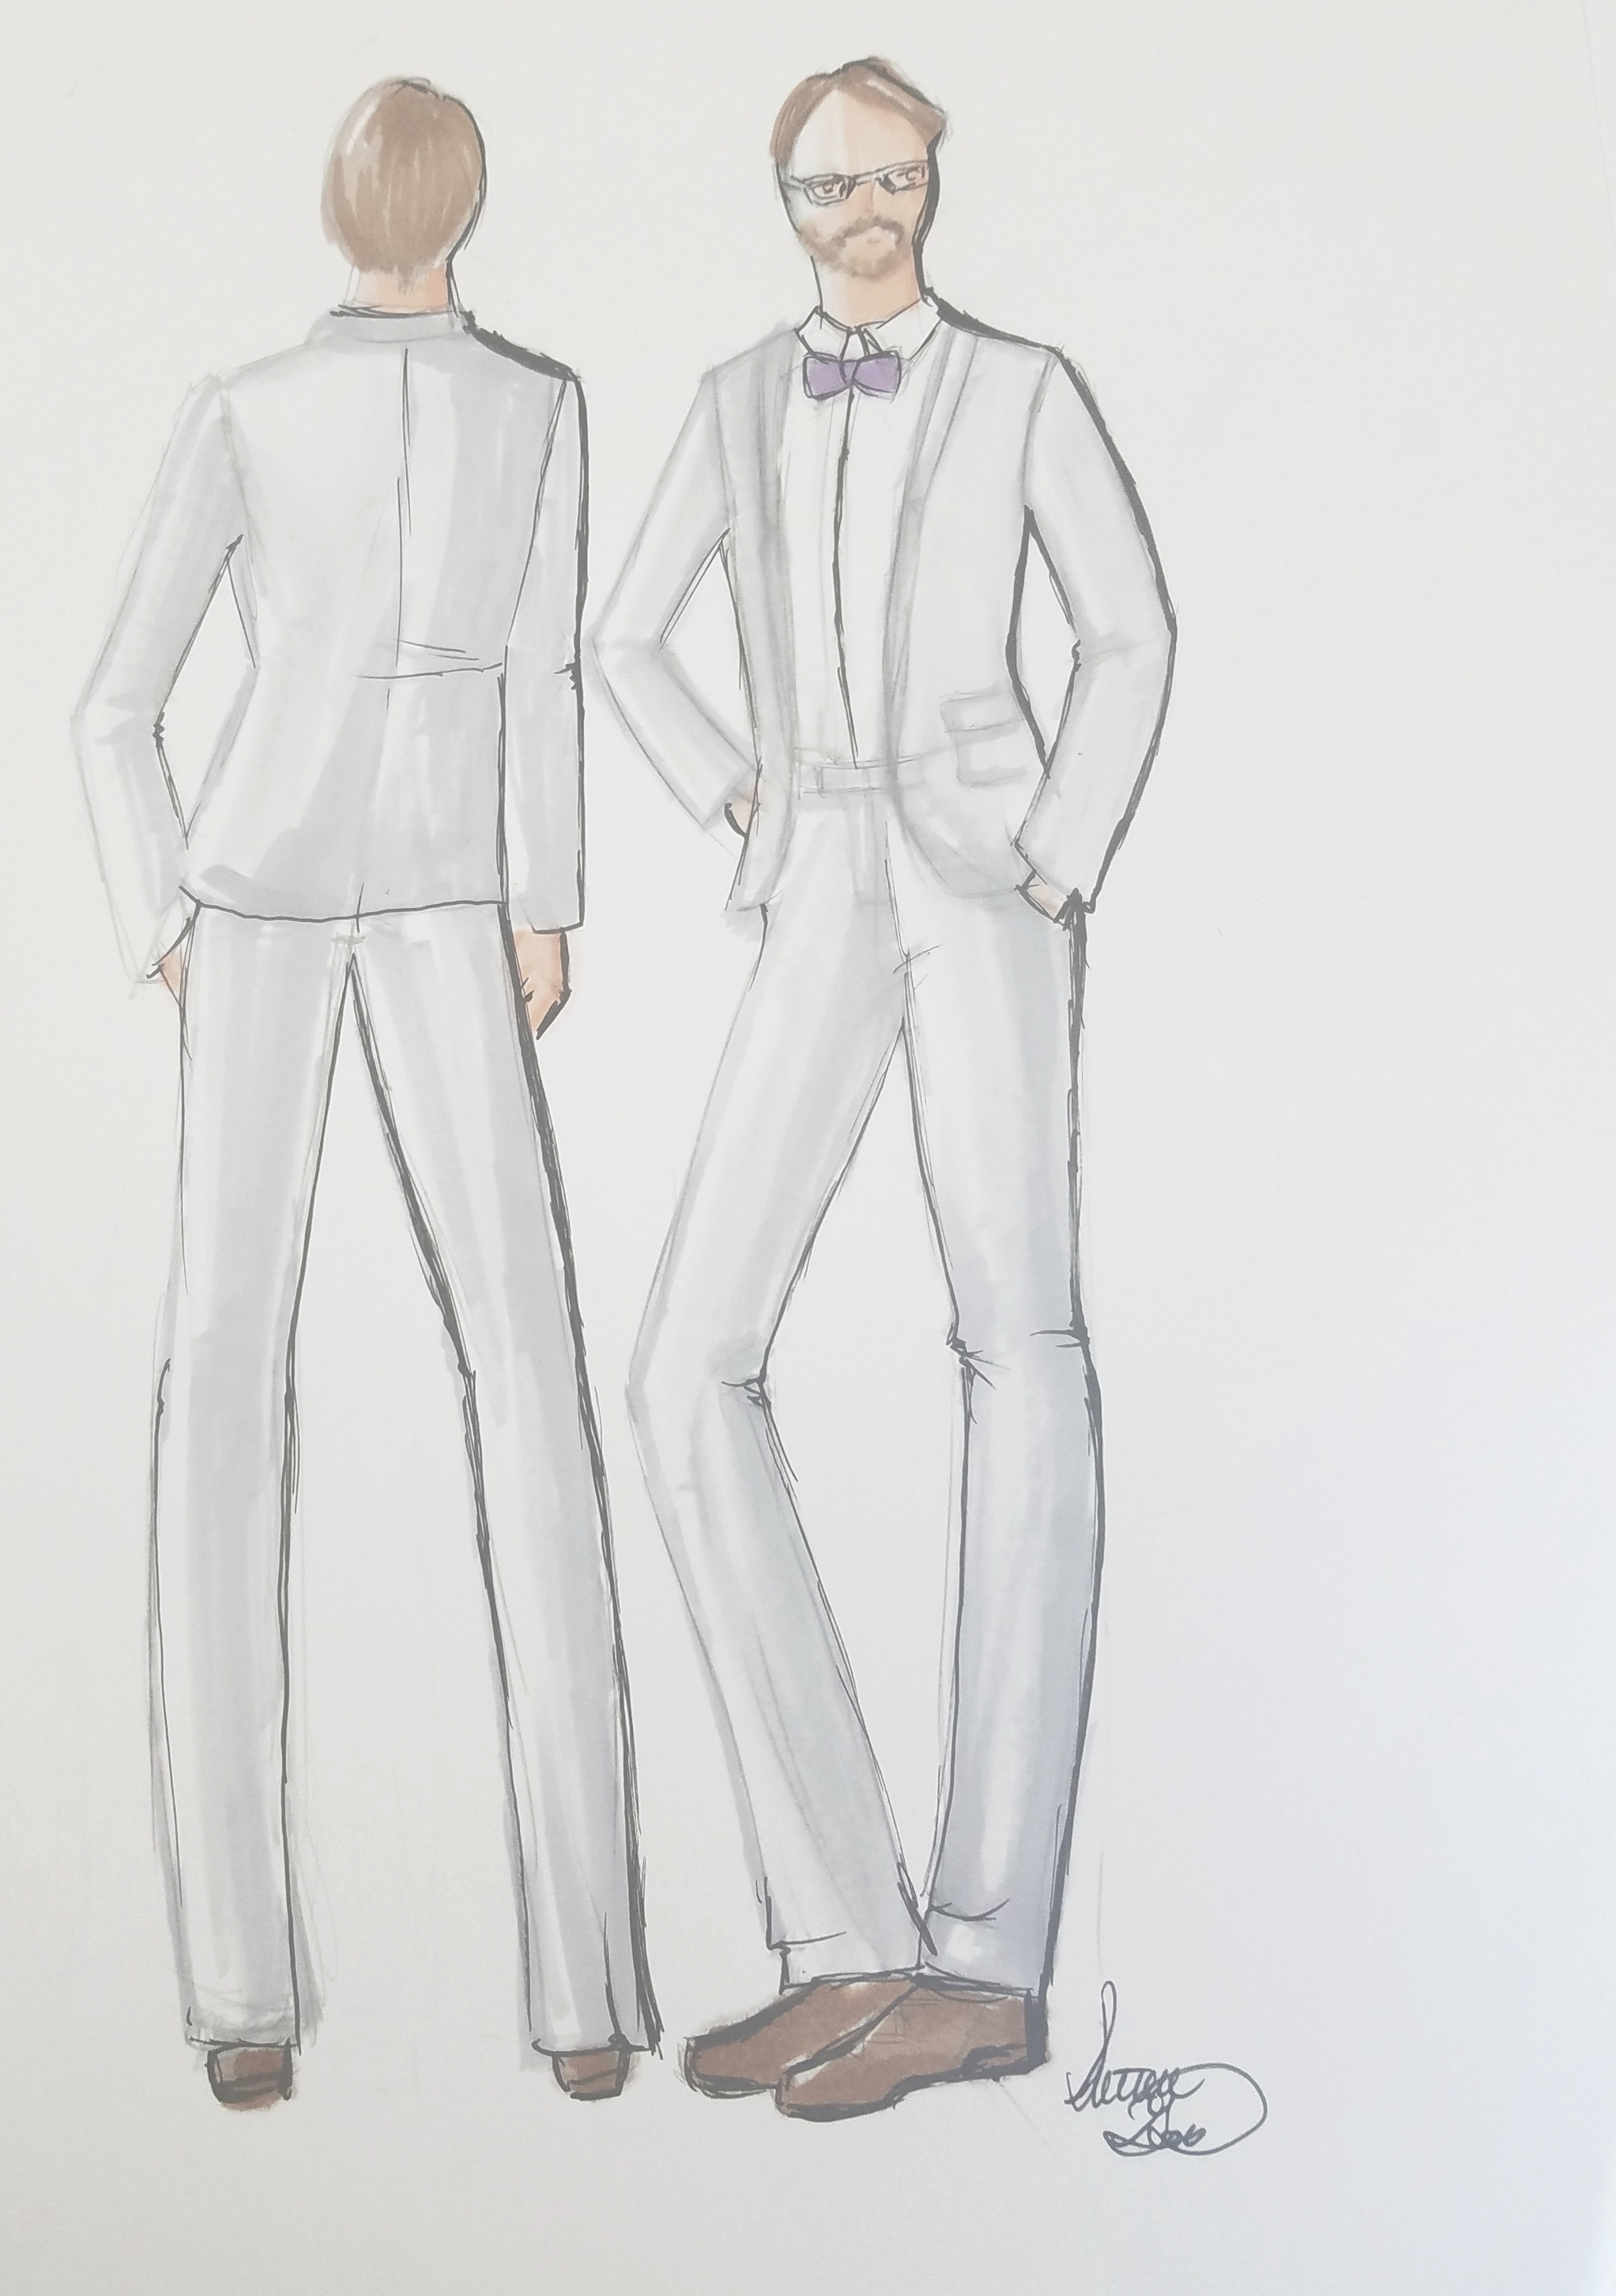 Men! Want a sketch of you and your wifey ! I can do one of you together or separate just like this pair here. The lovely lady to the right is apart of this set from a client request.